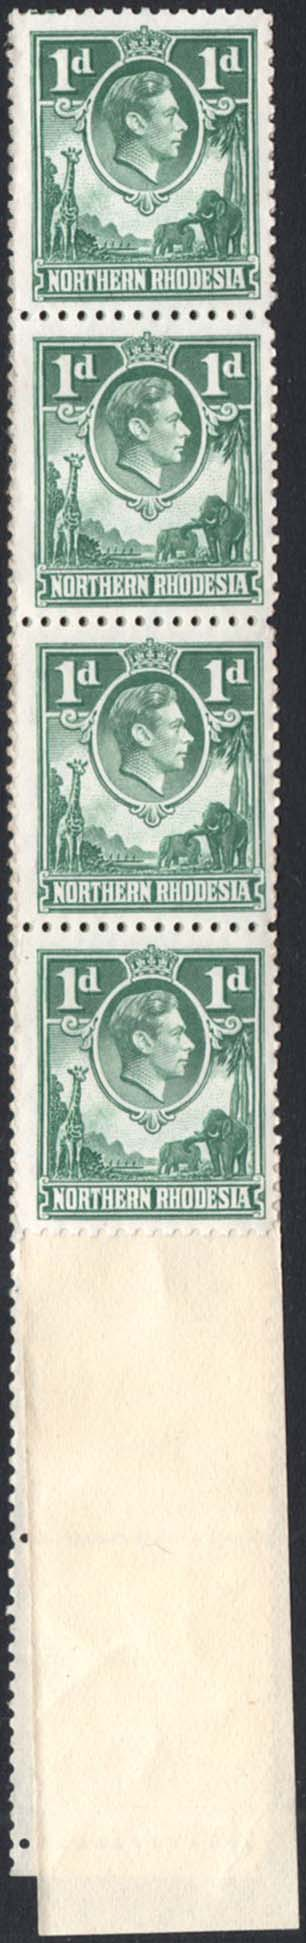 Northern Rhodesia 1938-52 1d coil strip